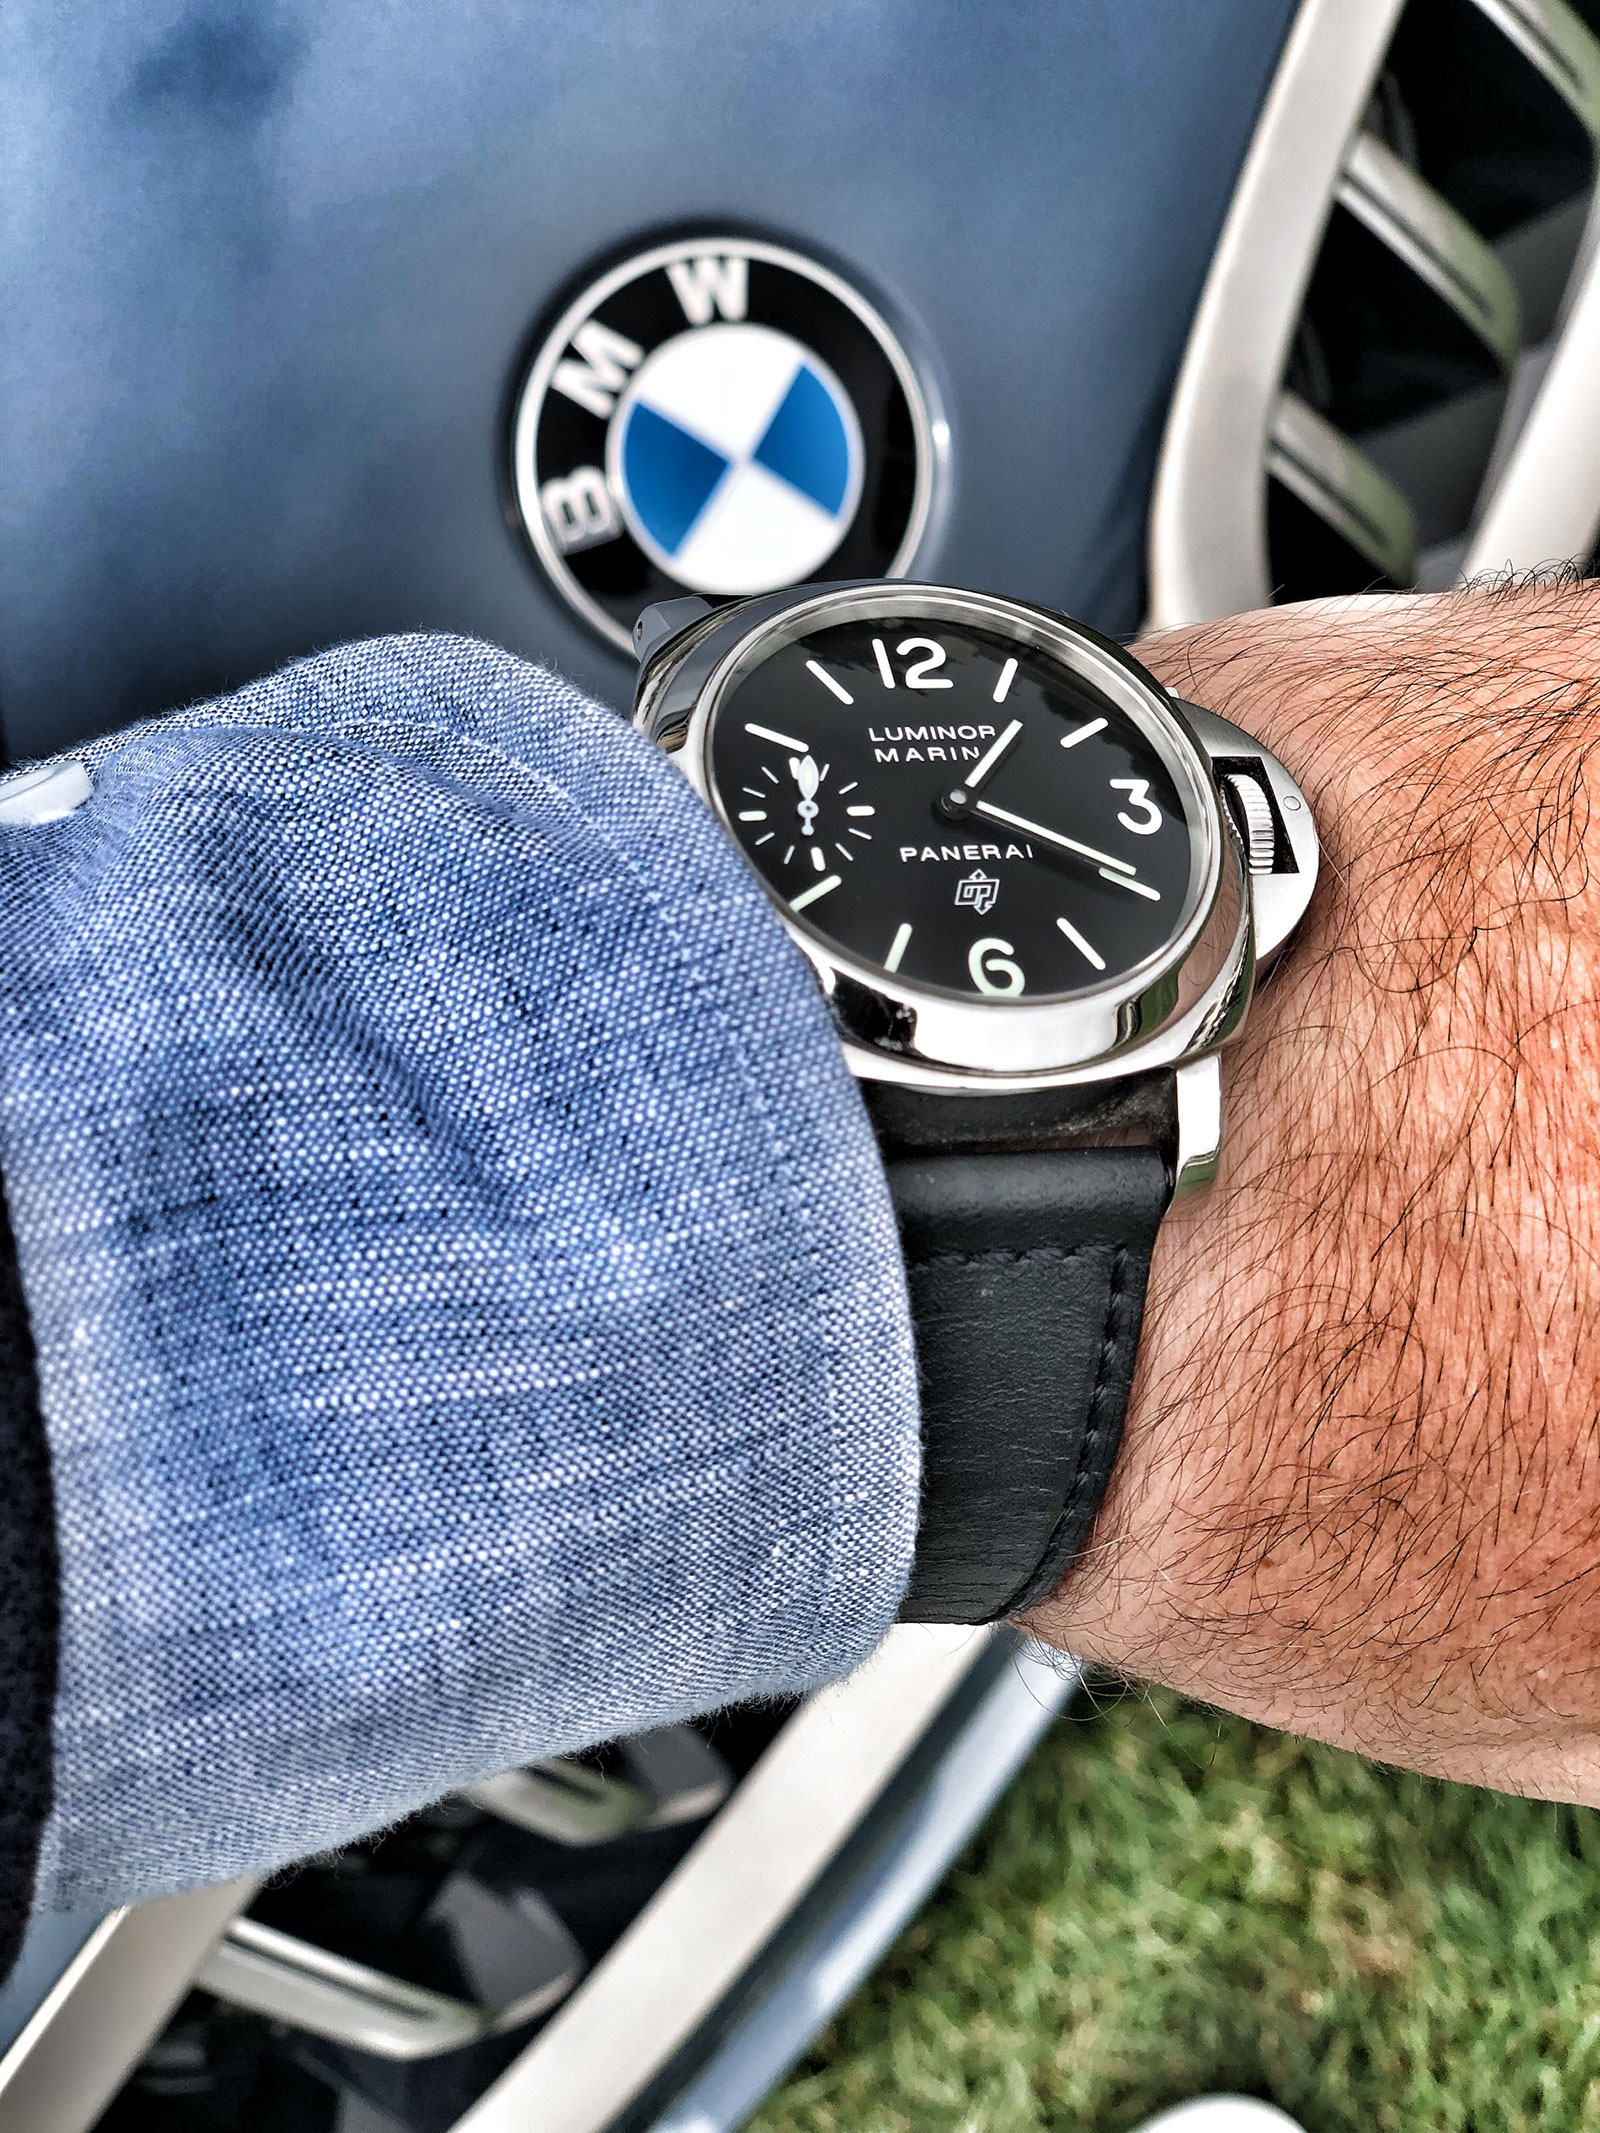 Watches & Cars: Five Best Watches You Can Find on StockX